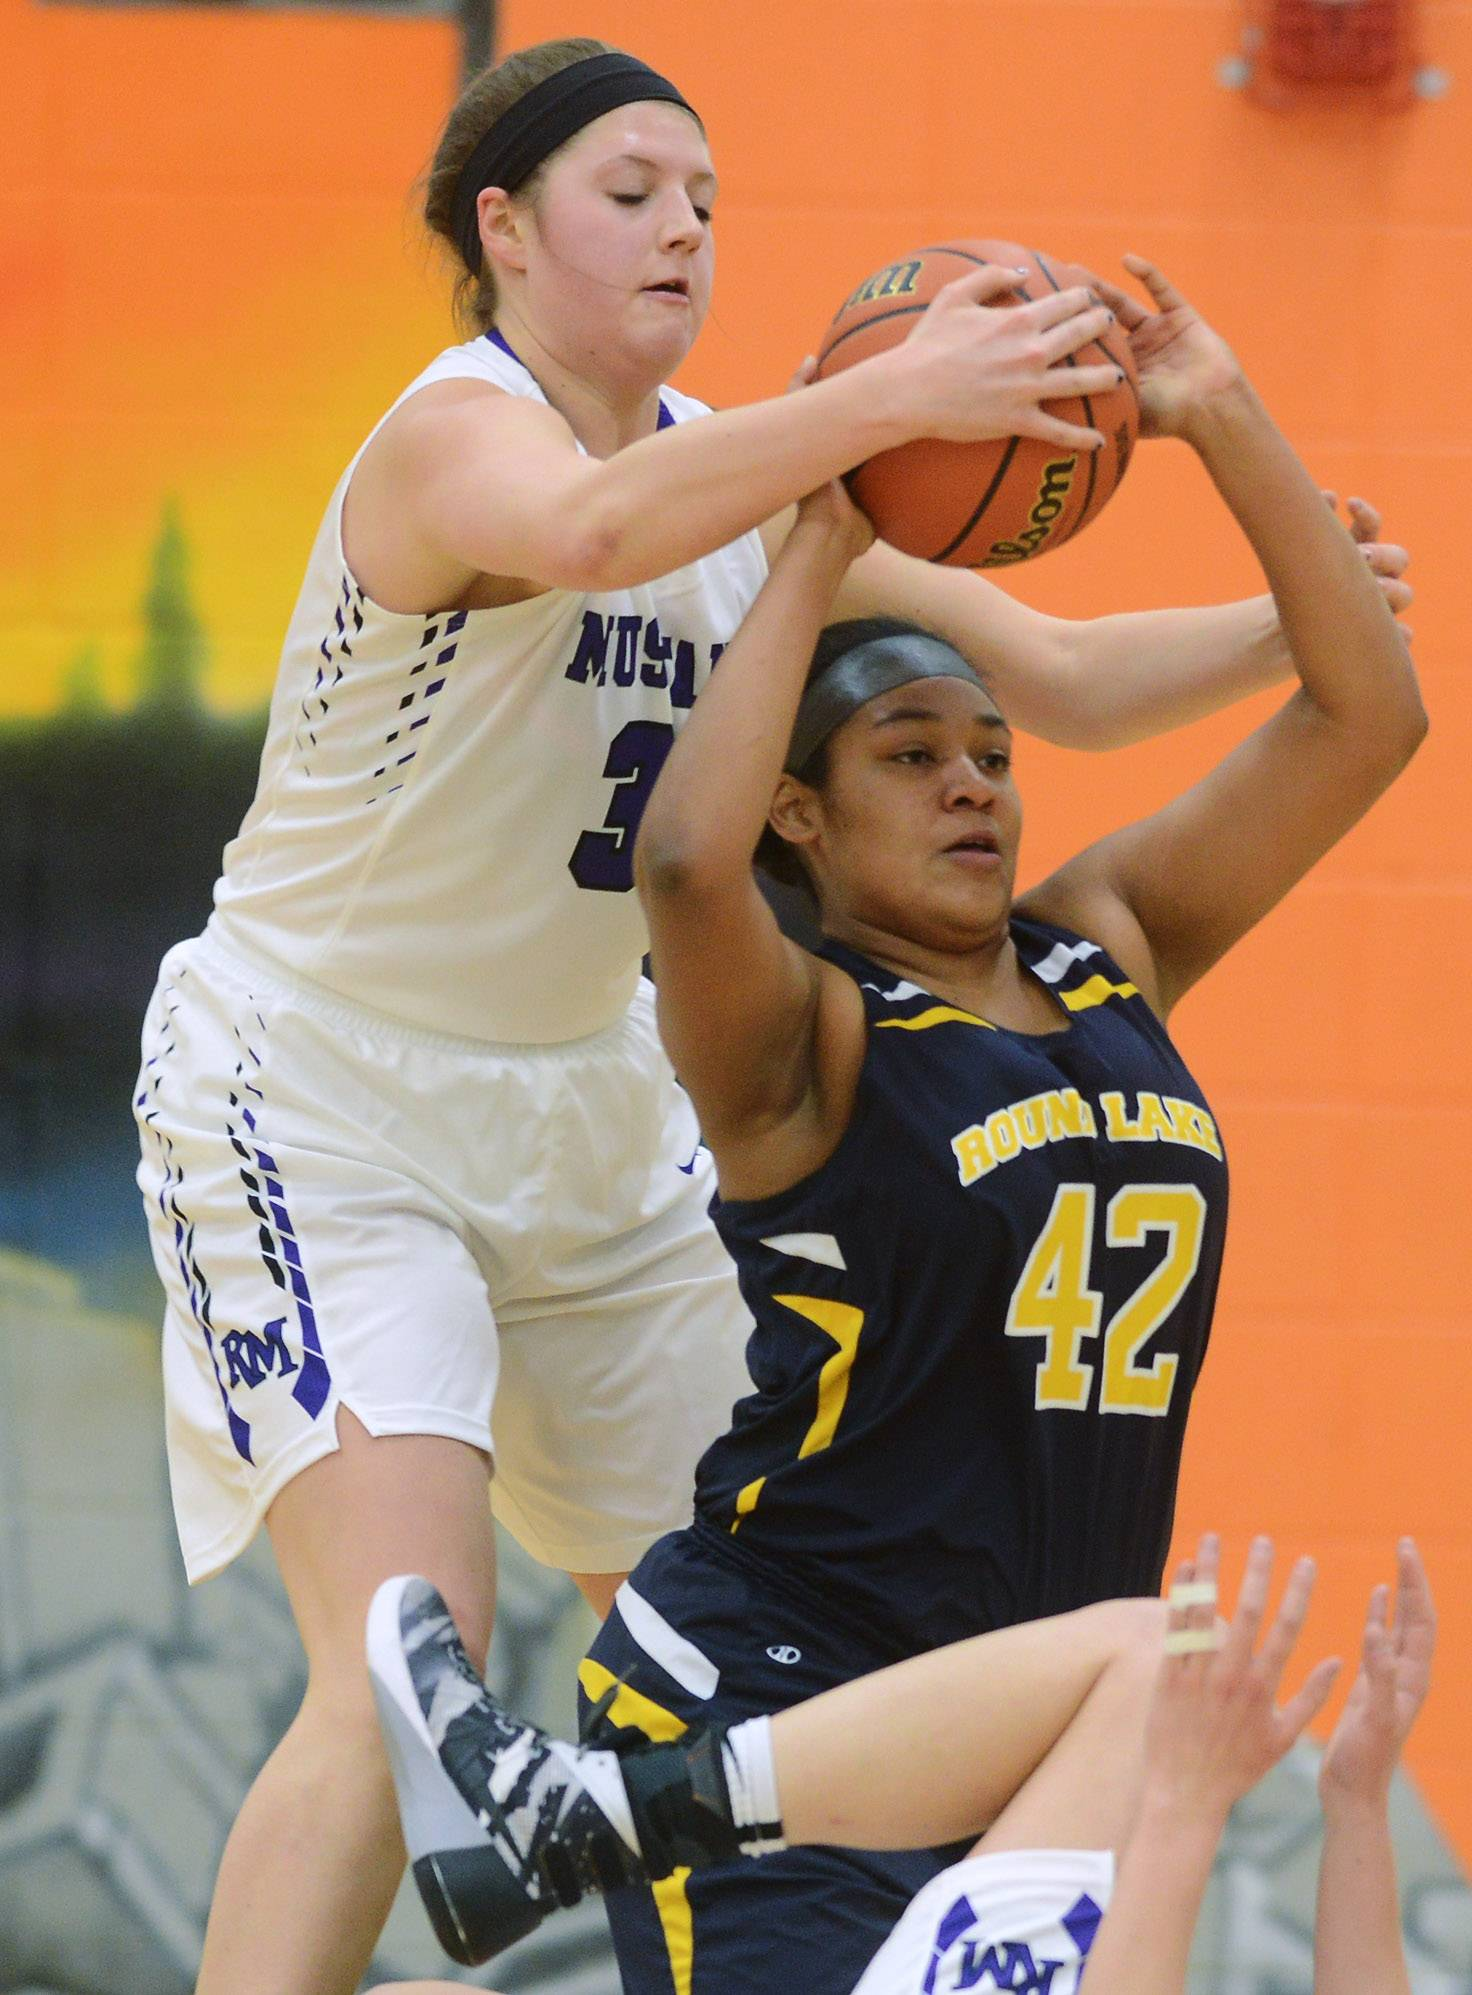 Rolling Meadows' Katherine Nolan, here taking the ball from Round Lake's Tatyana Steadman during the Hersey regional play last season, will continue her basketball efforts at Loyola University after her final prep season.